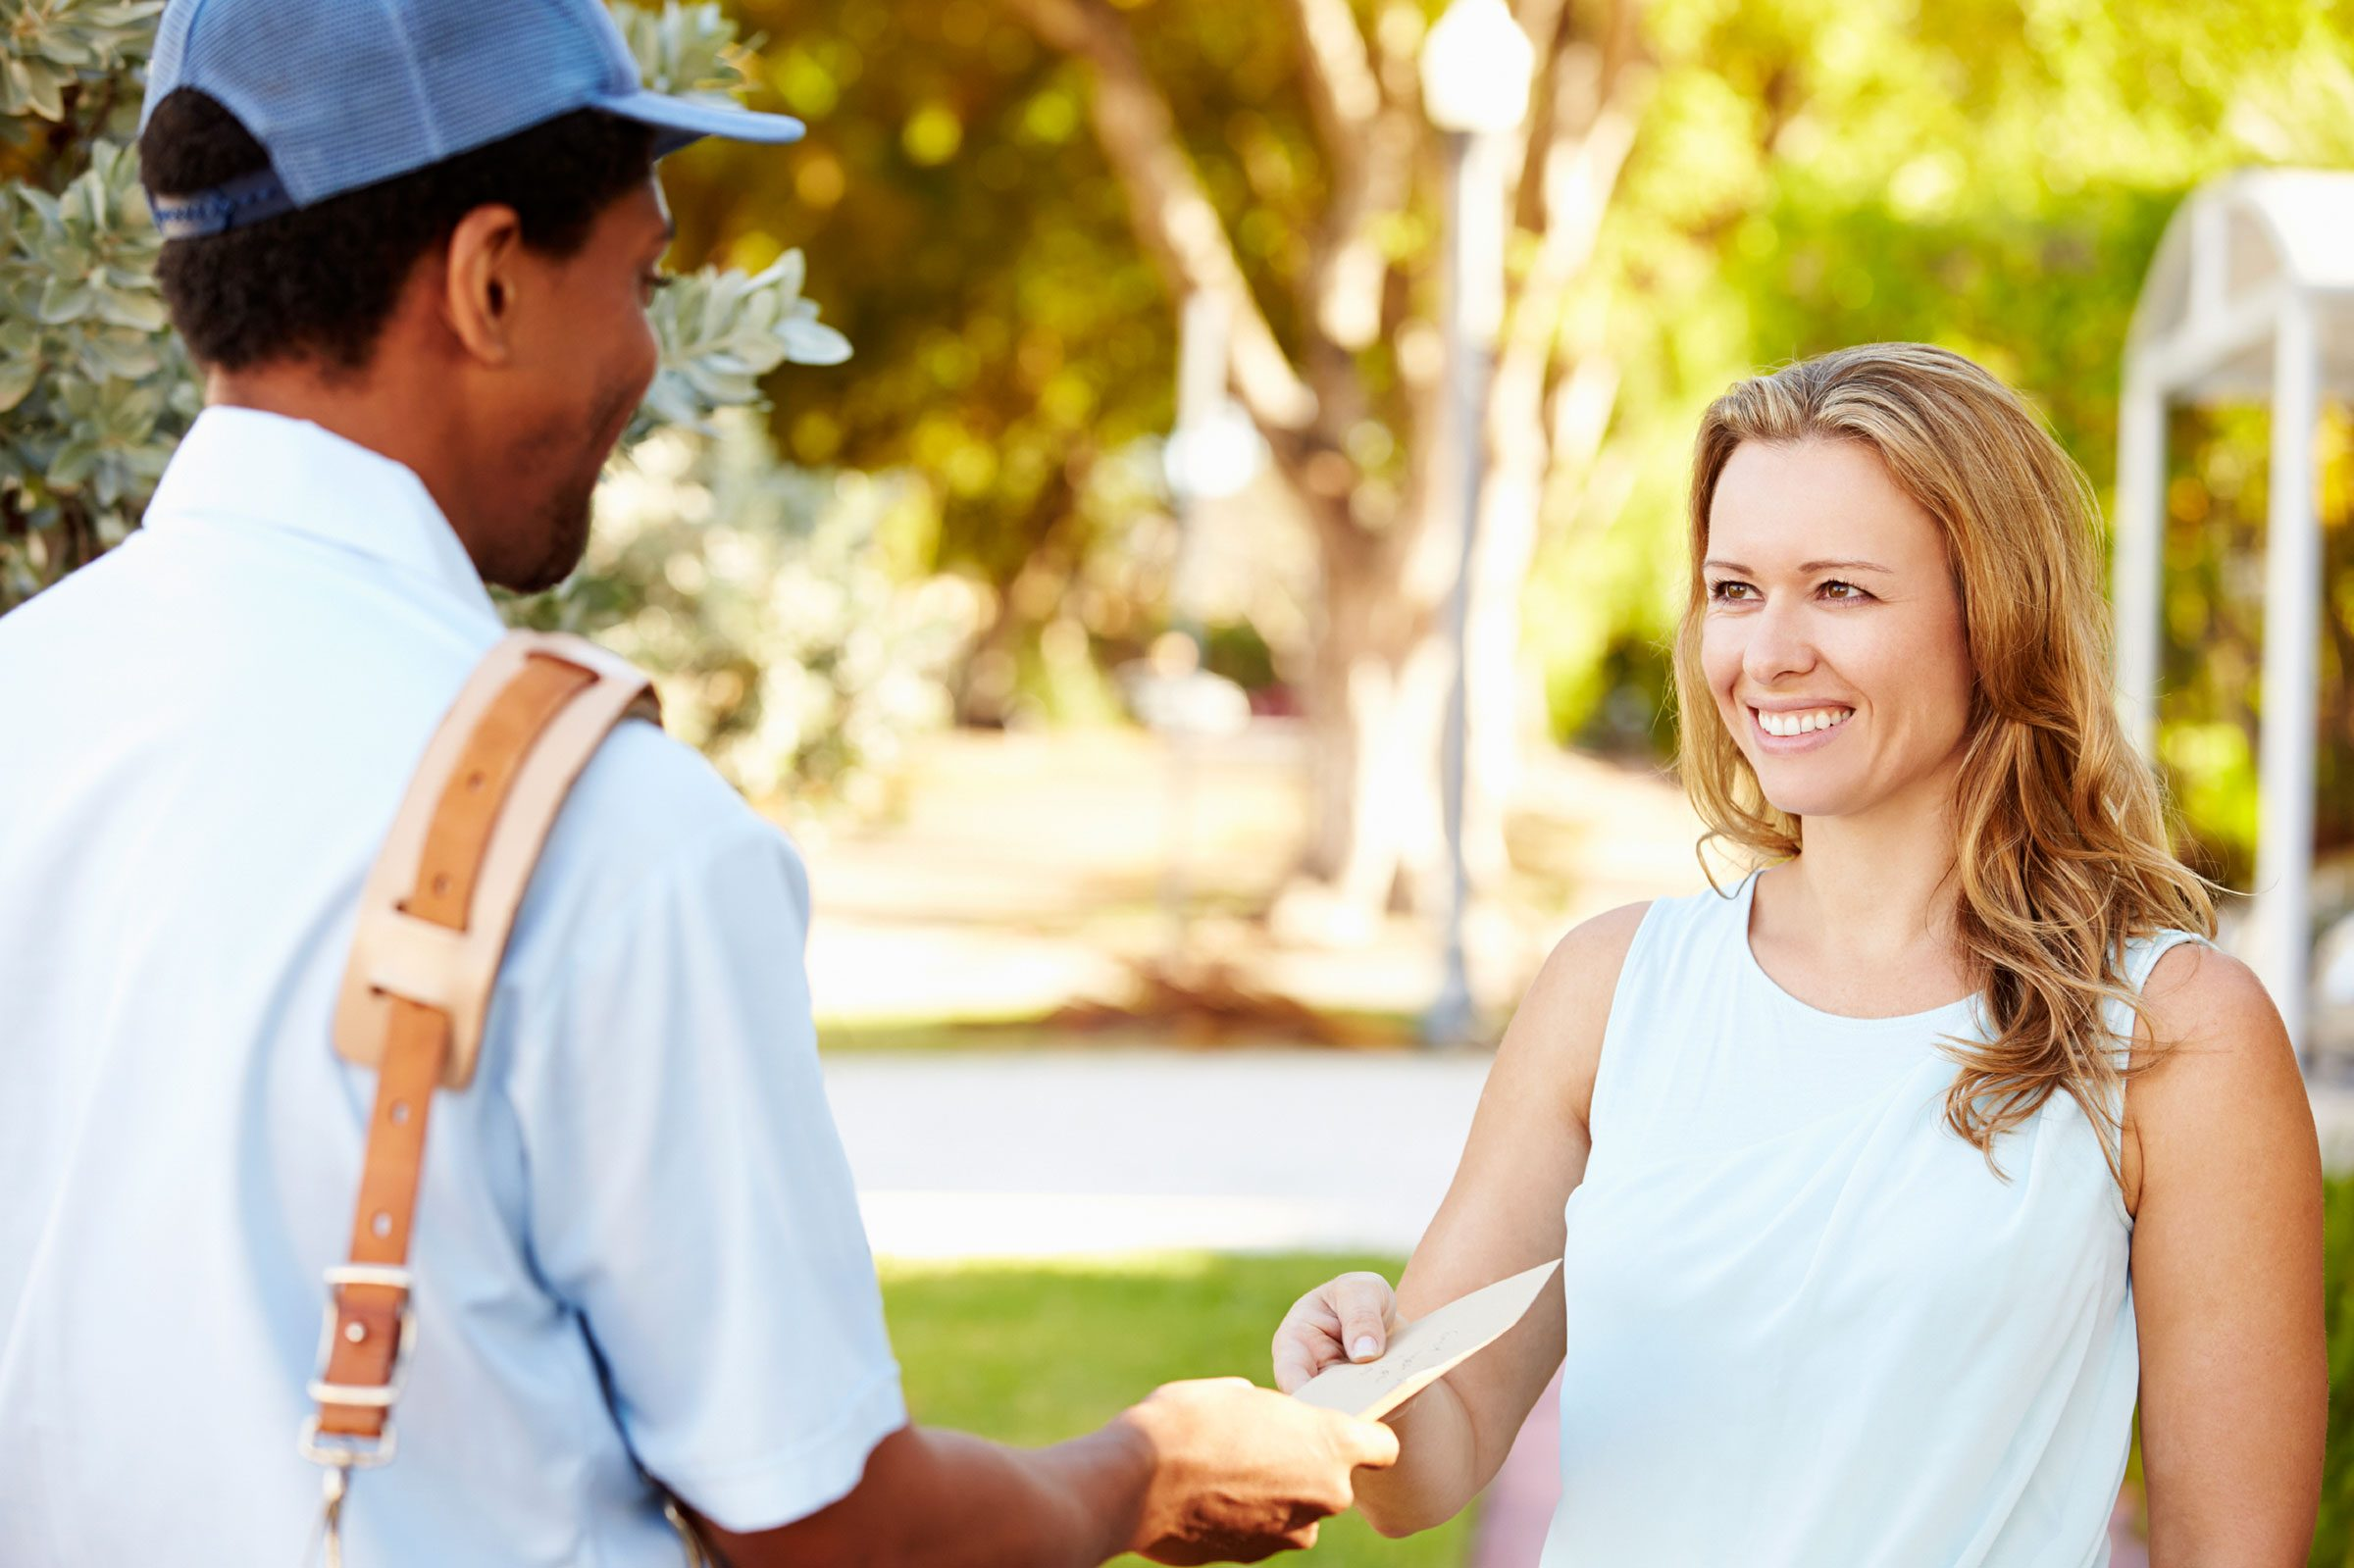 13 Things Your Mail Carrier Wont Tell You – Mail Carrier Job